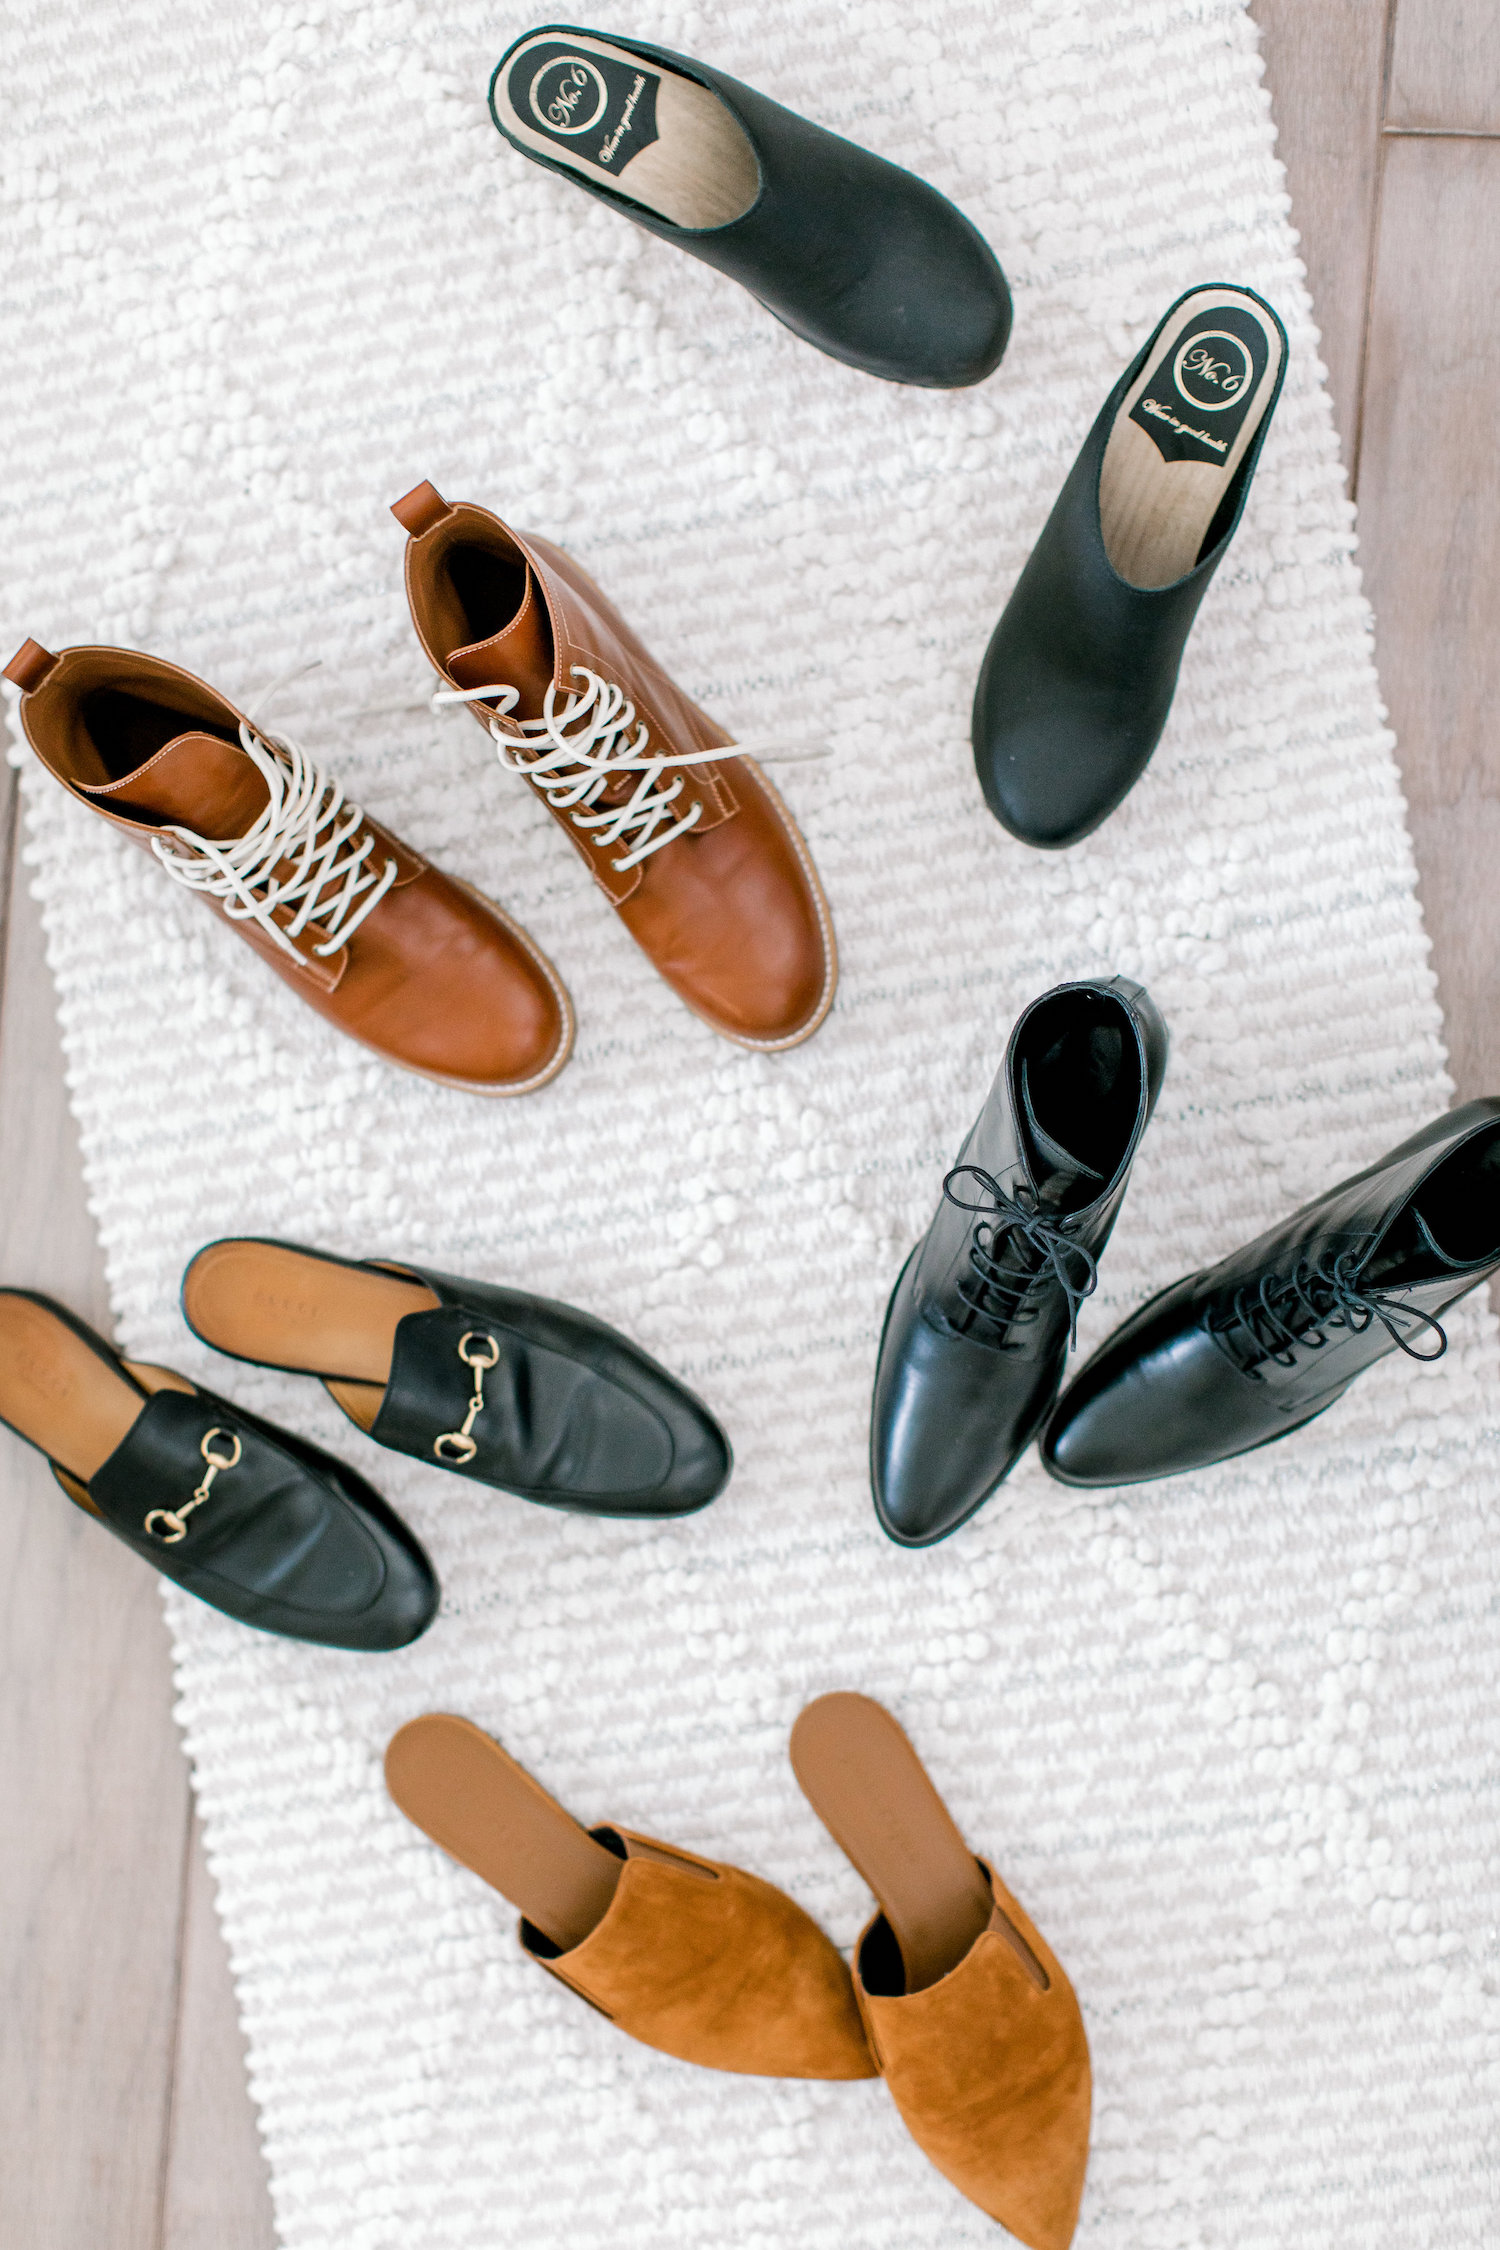 The Life Styled Spring Shoes